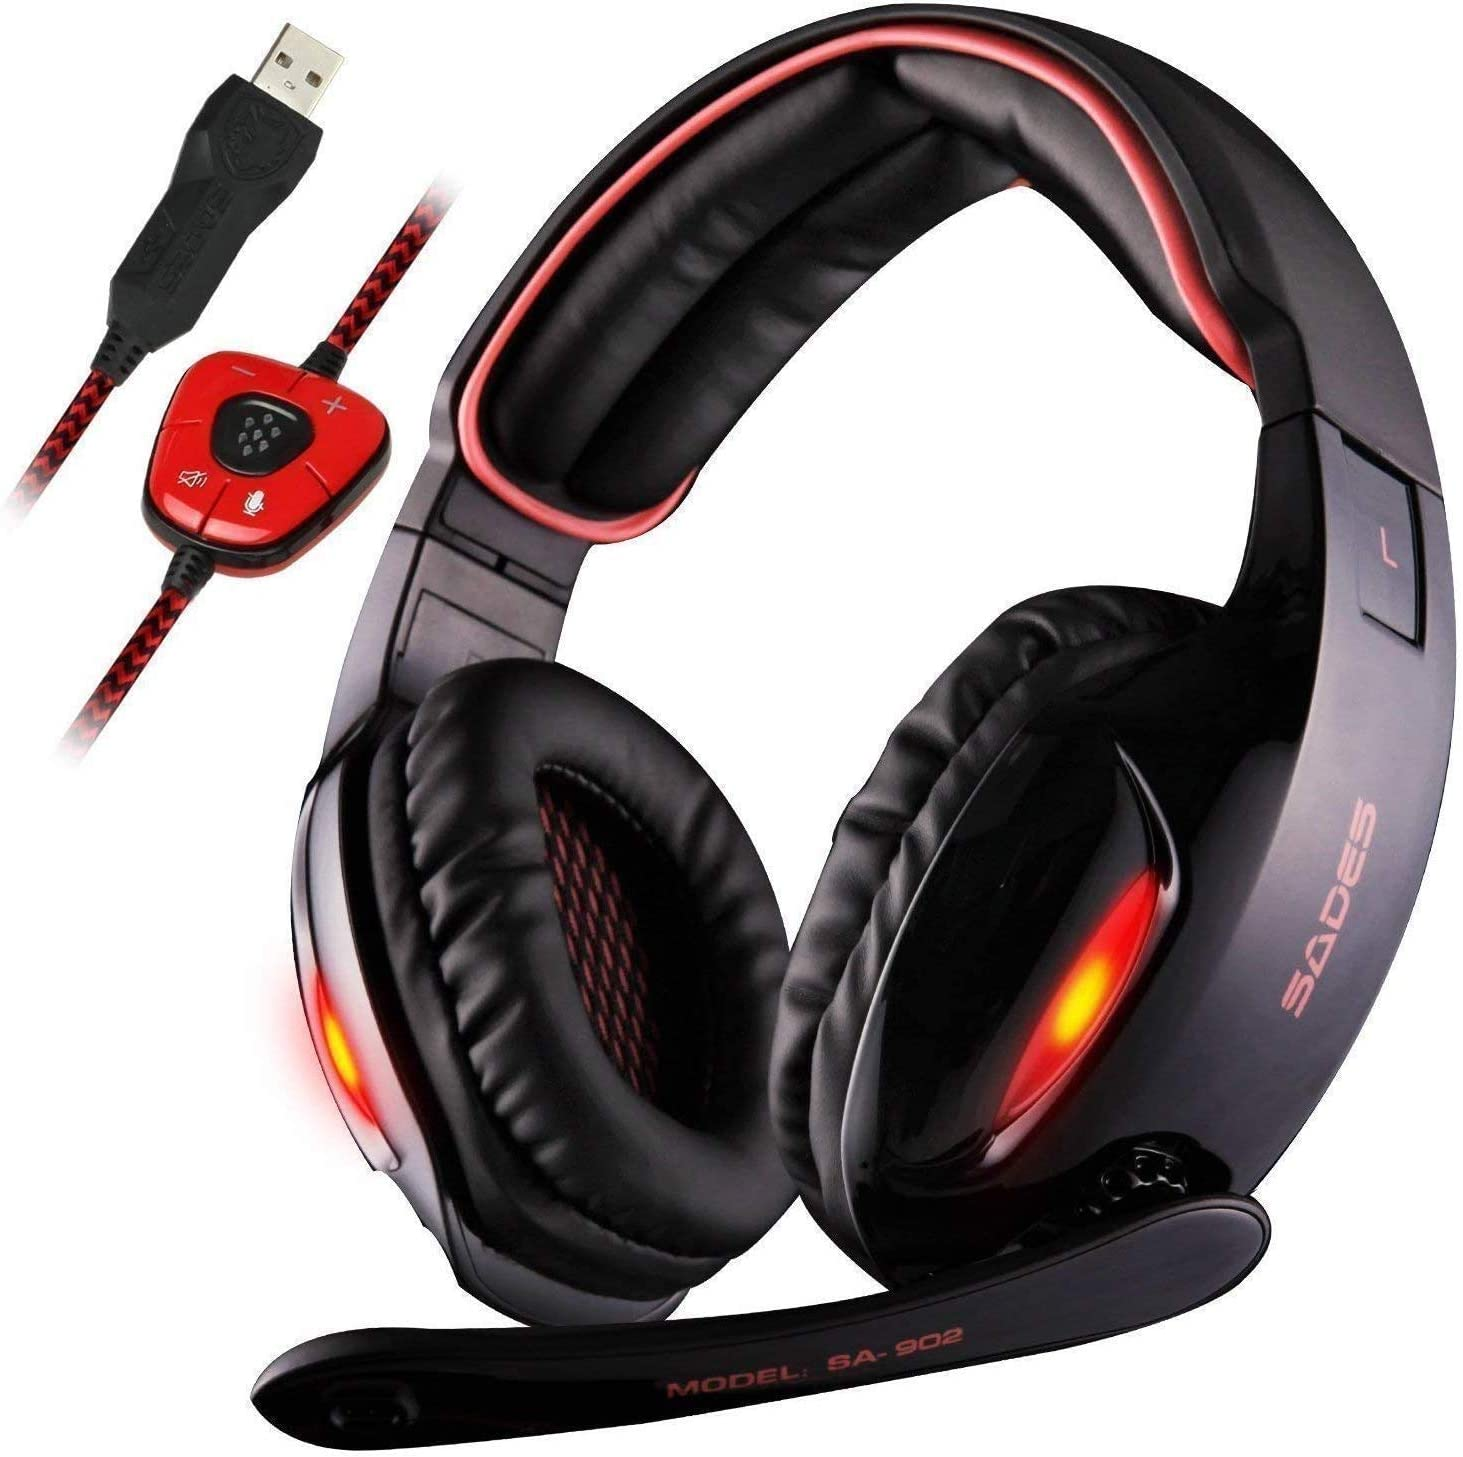 Amazon Promo Code for USB Stereo Surround Sound Gaming Headset with Mic